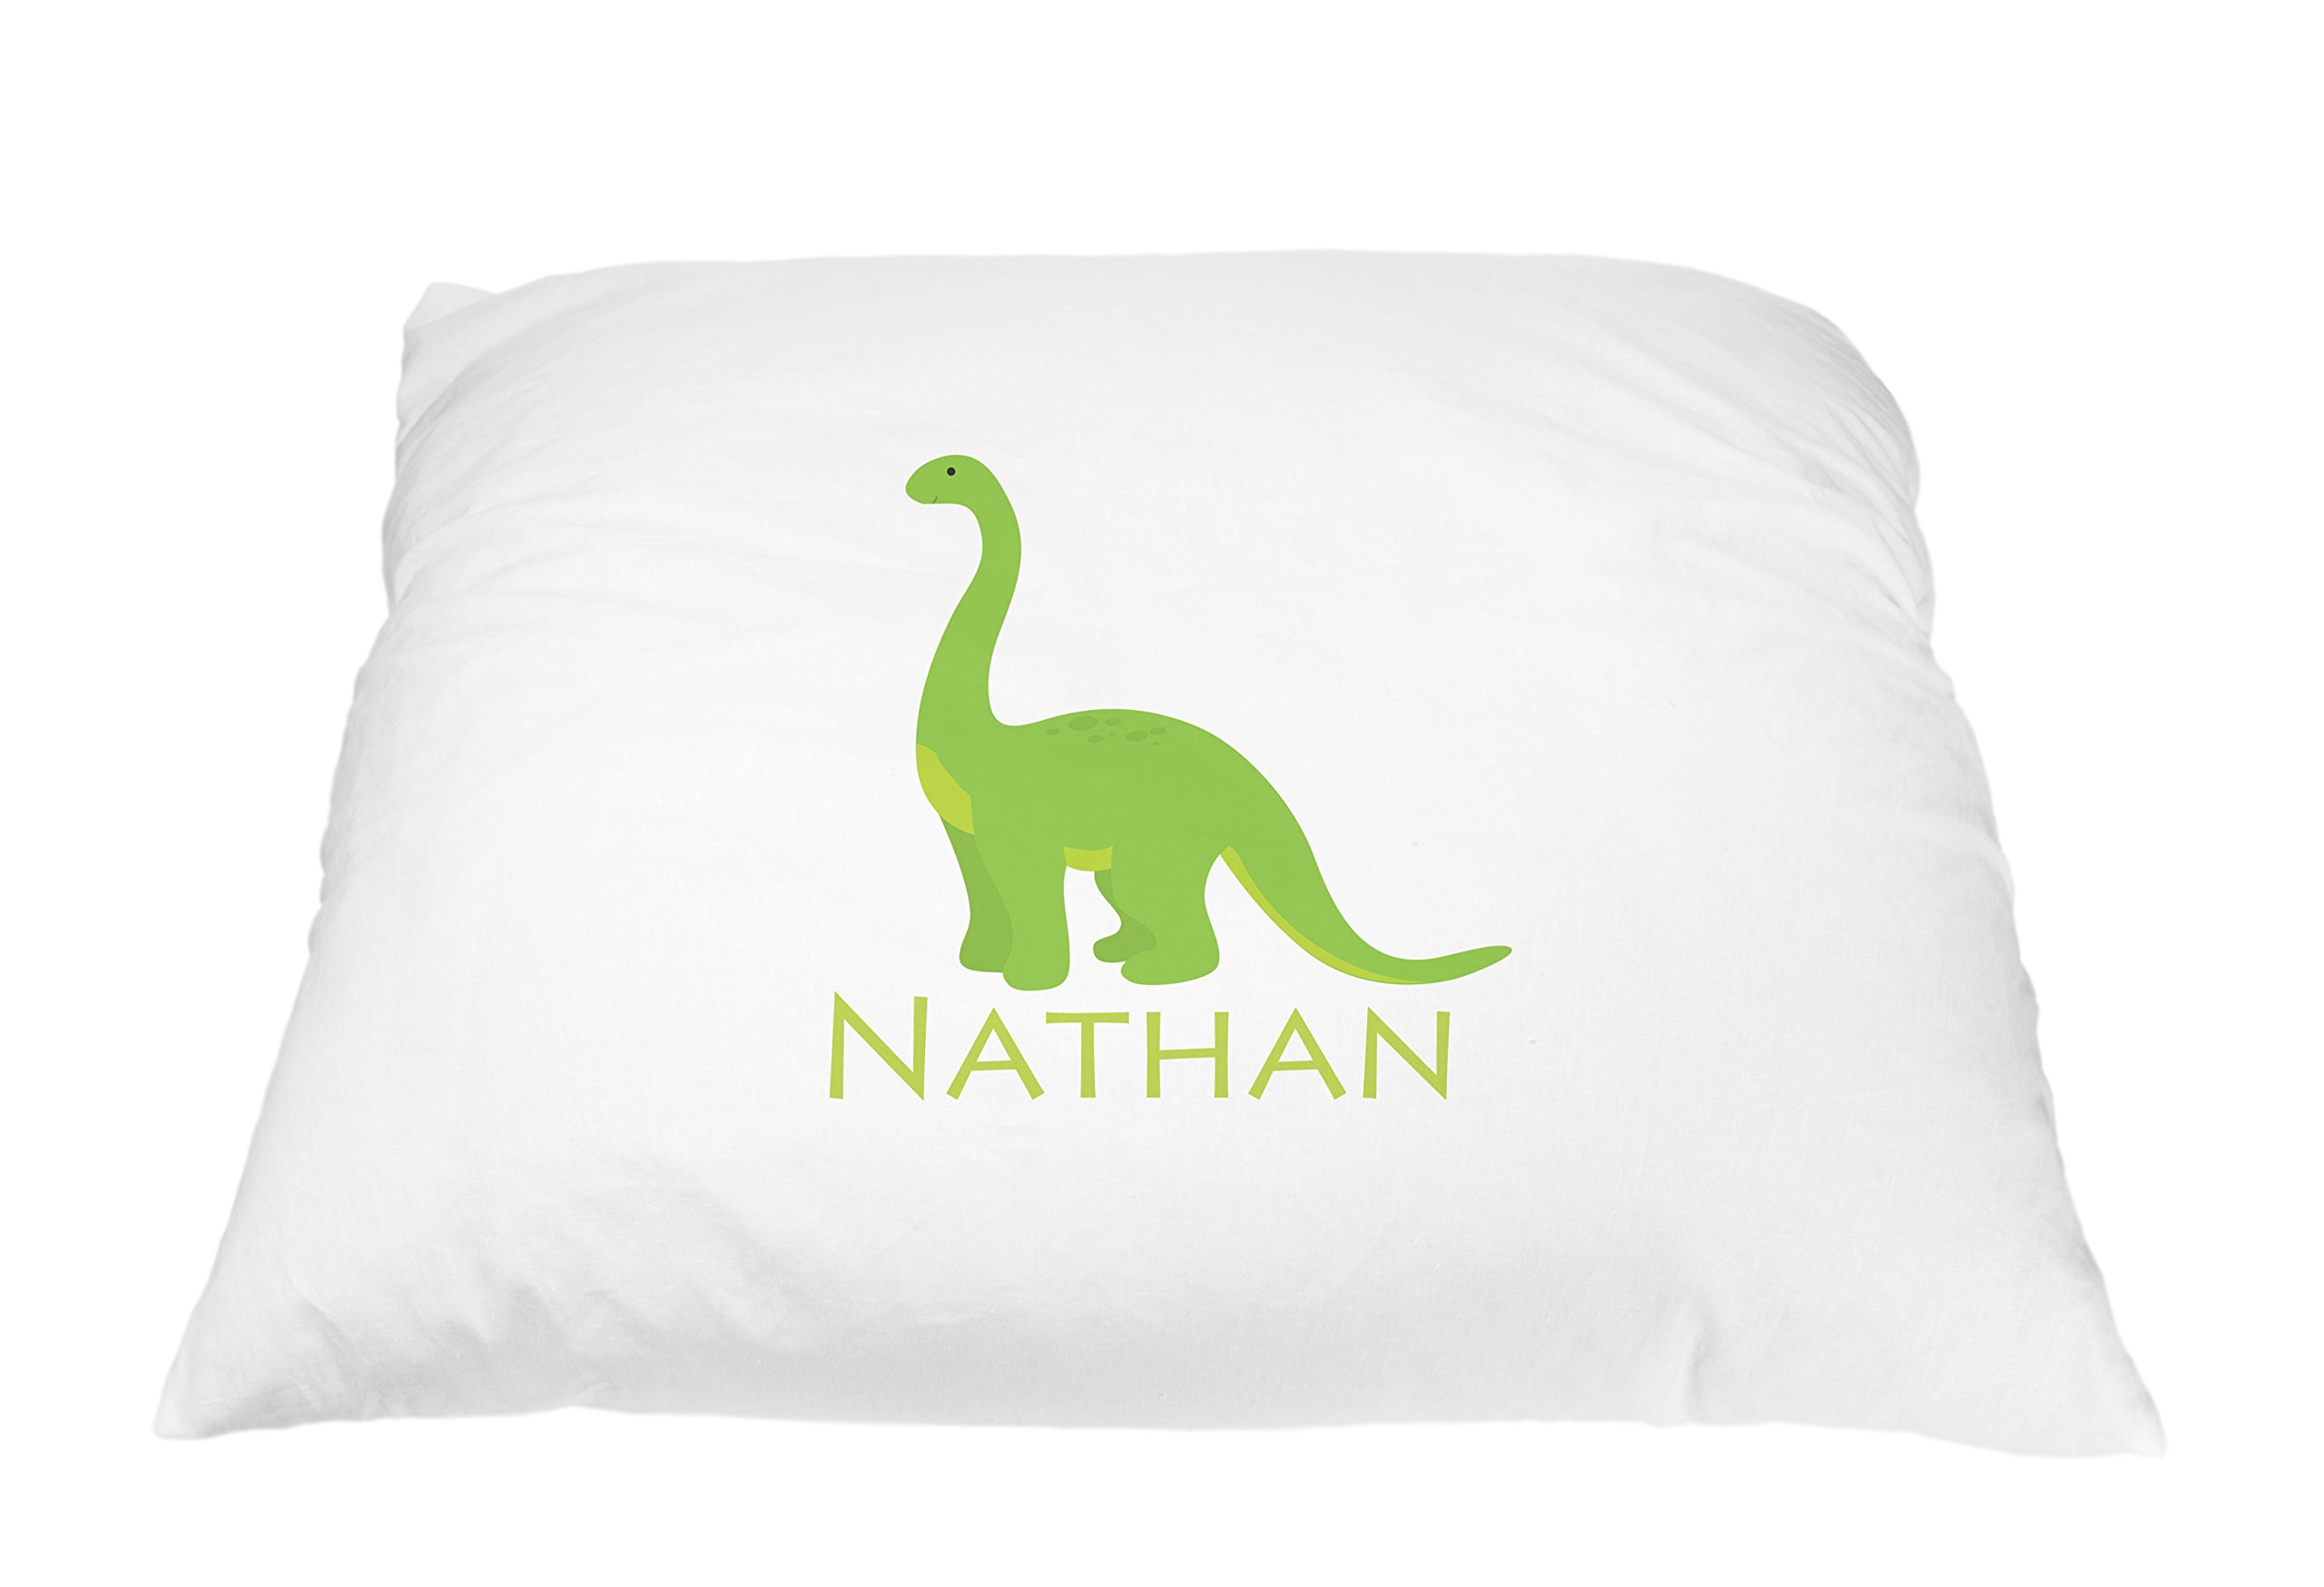 Personalized Kid's Dino Pillowcase Microfiber Polyester 20 by 30 Inches, Dino Pillow Case for Dinosaur Kids Room, Dino Room Décor, Kids Pillow for Boys, Toddler Pillow Cover for Dino Bedding